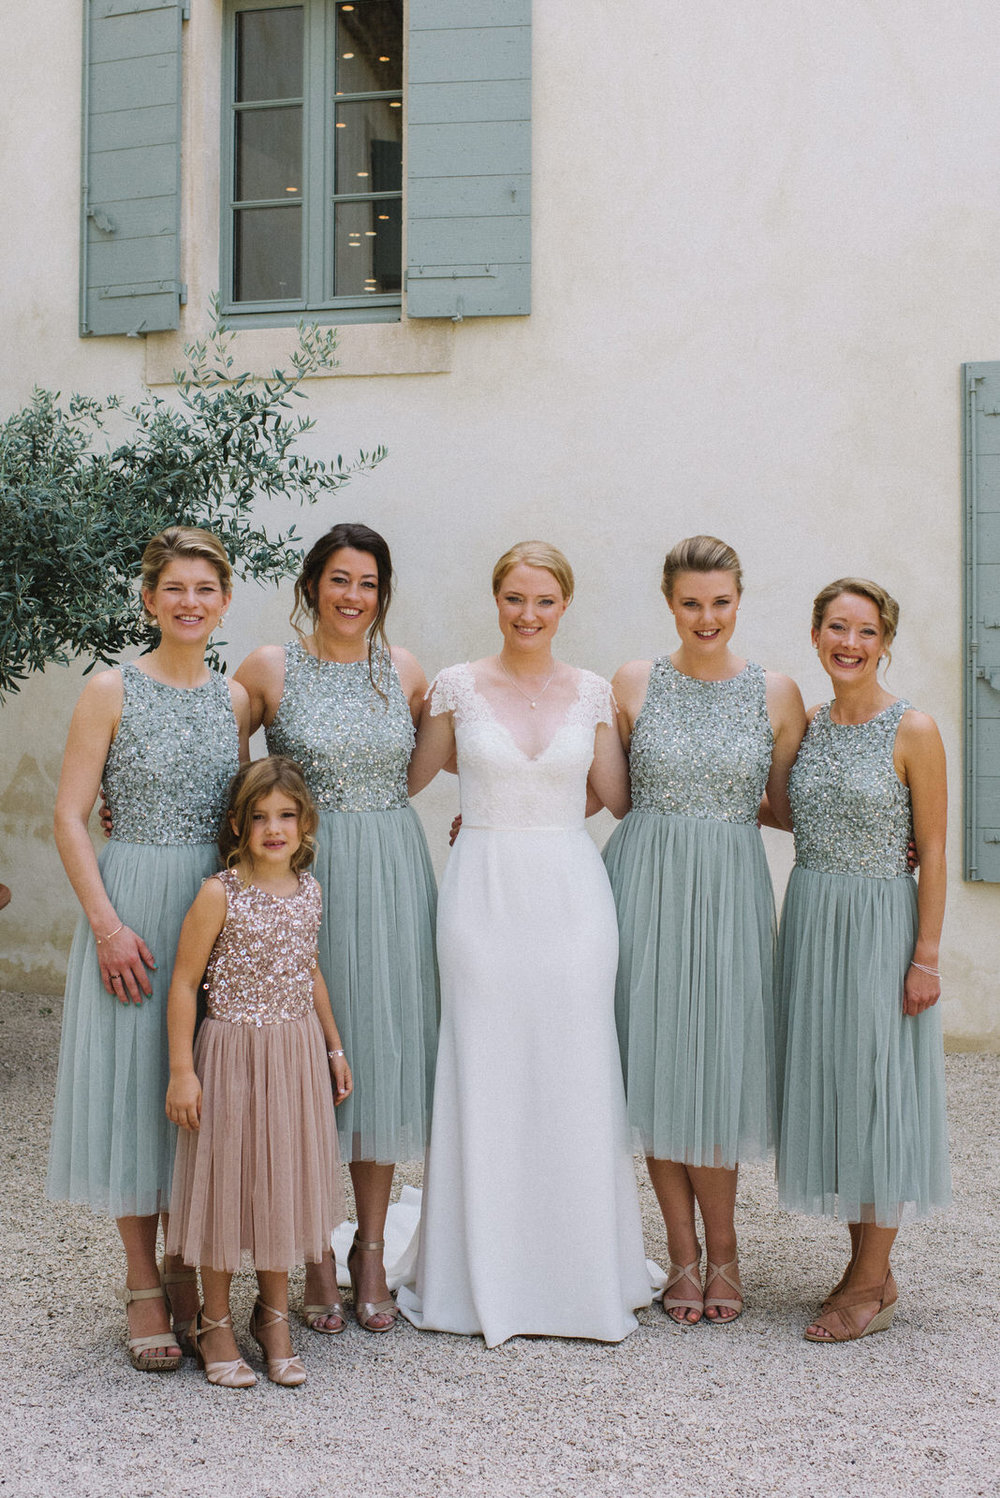 009-LOURMARIN-WEDDING-PHOTOGRAPHER-PROVENCE-WEDDING-ALTERNATIVE-WEDDING-PHOTOGRAPHY-FRANCE-PROVENCE-GARDEN-WEDDING.JPG